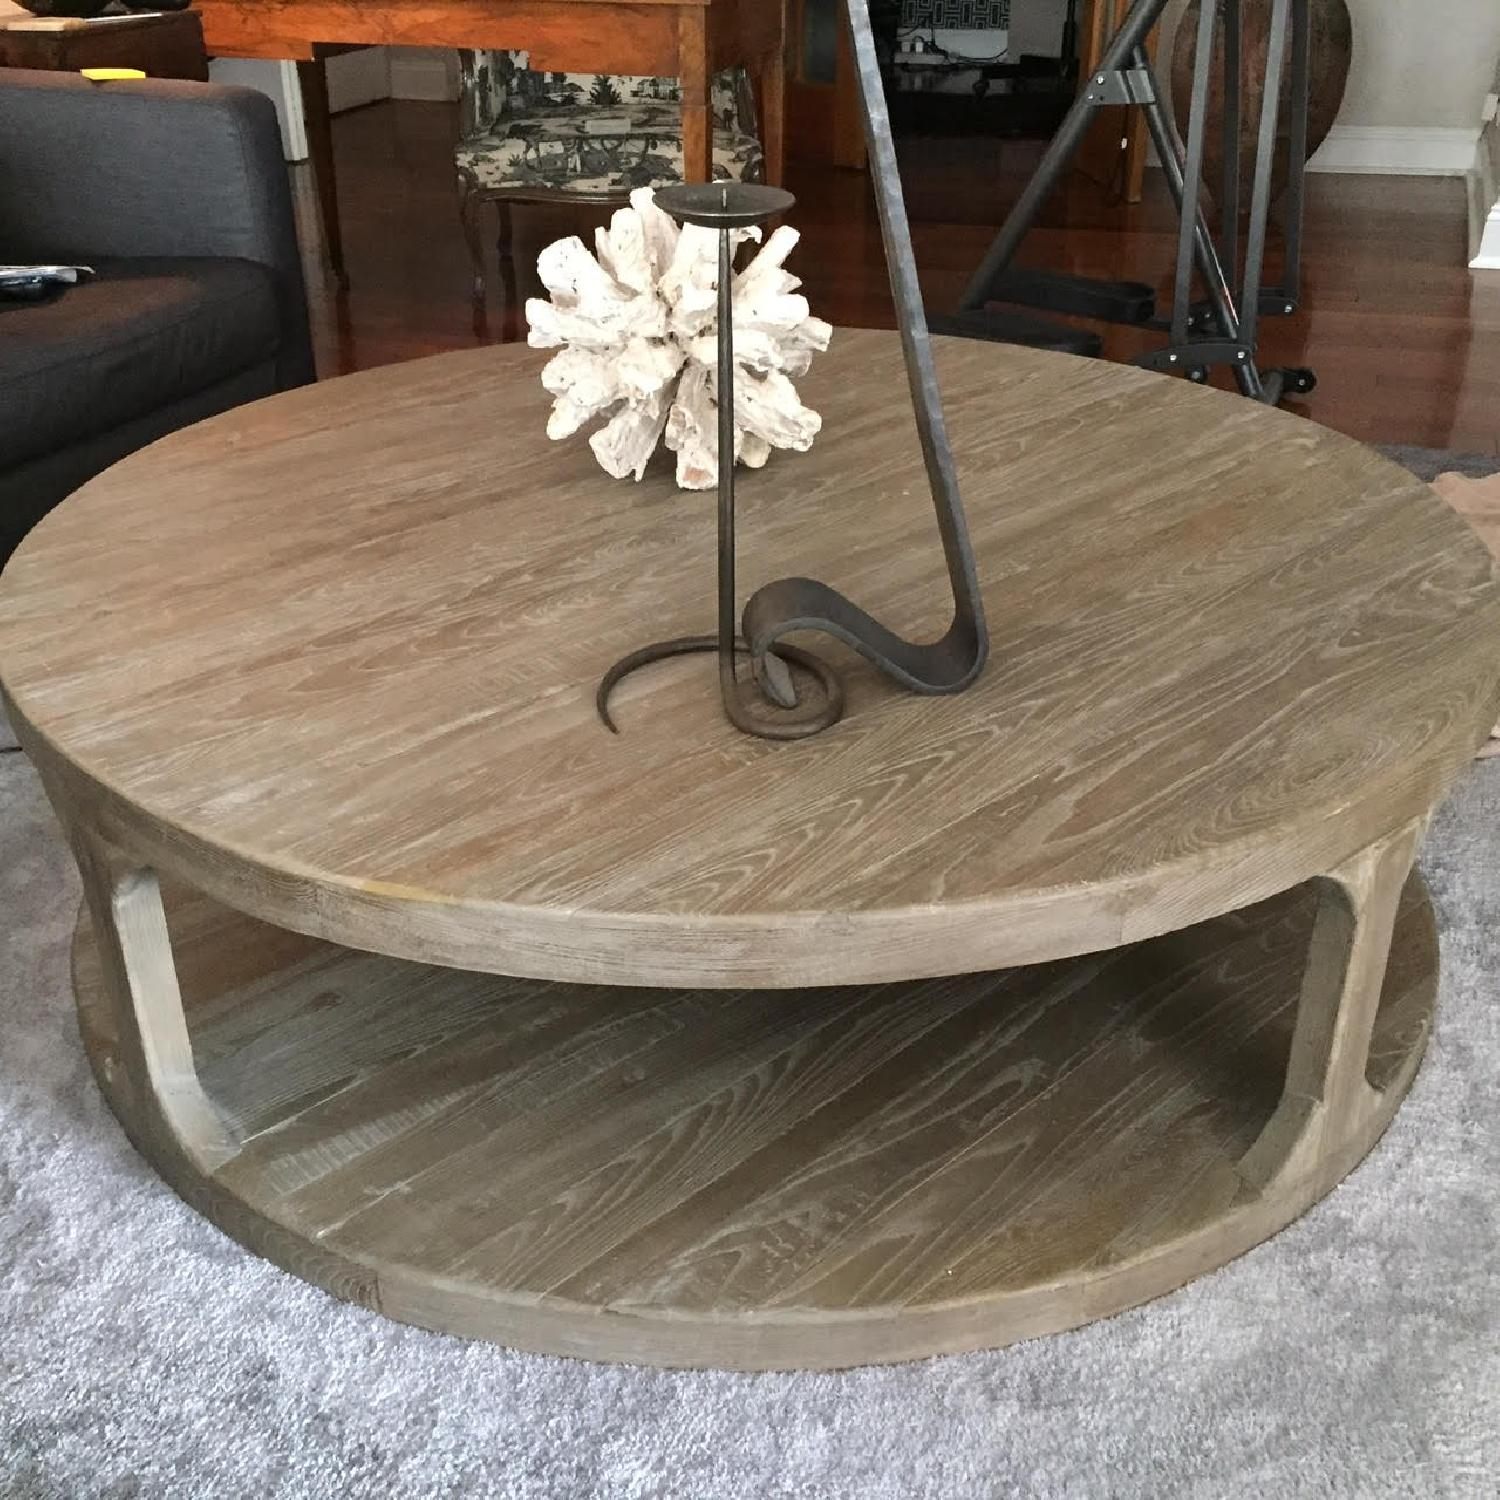 Restoration Hardware Martens Coffee Table - image-3